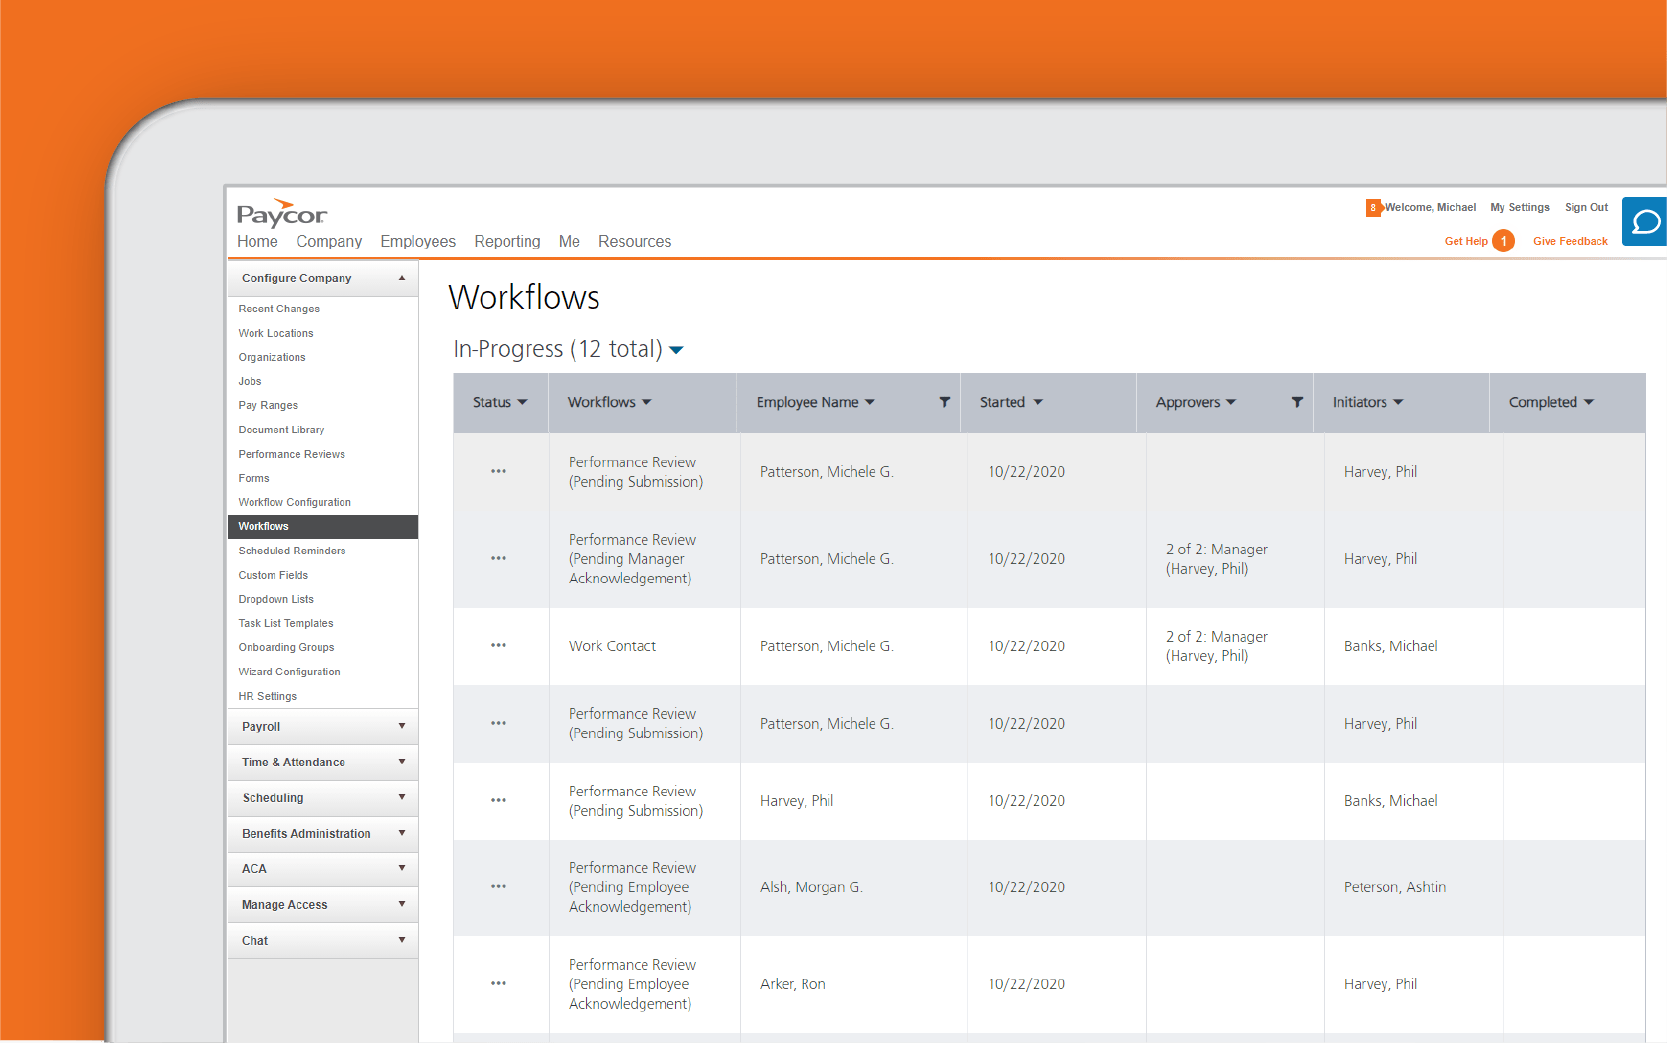 Corner of. tablet showing workflow dashboard against orange background